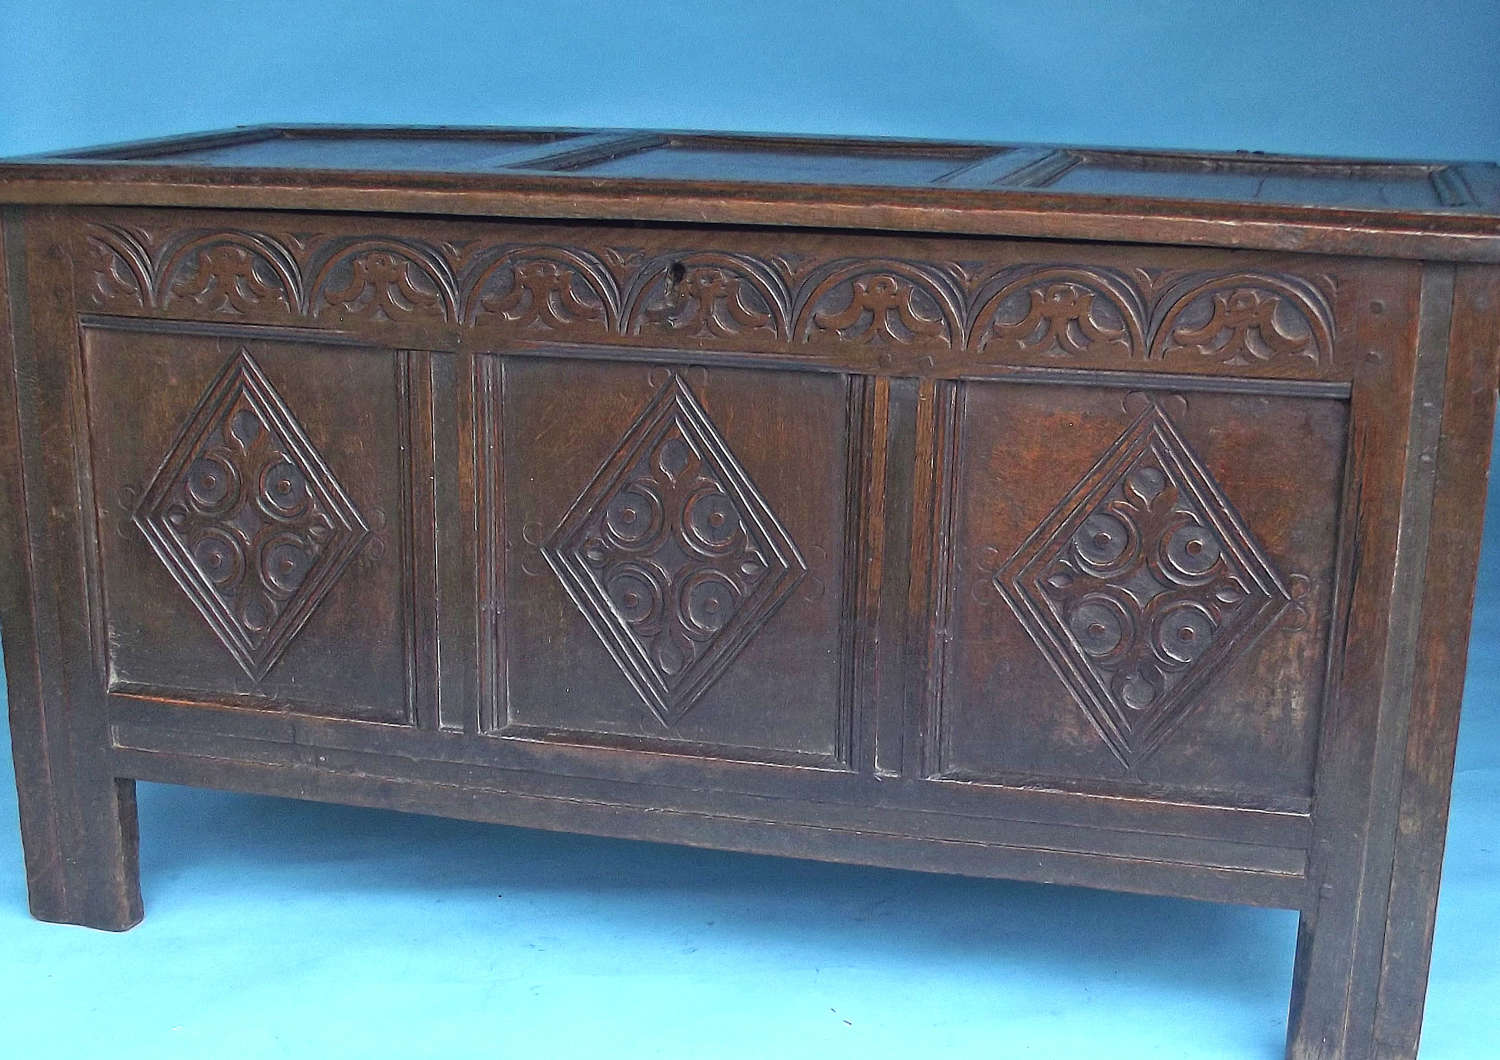 Antique Furniture Oak 17thc Joyned Charles 1 Coffer. English. C1630-45